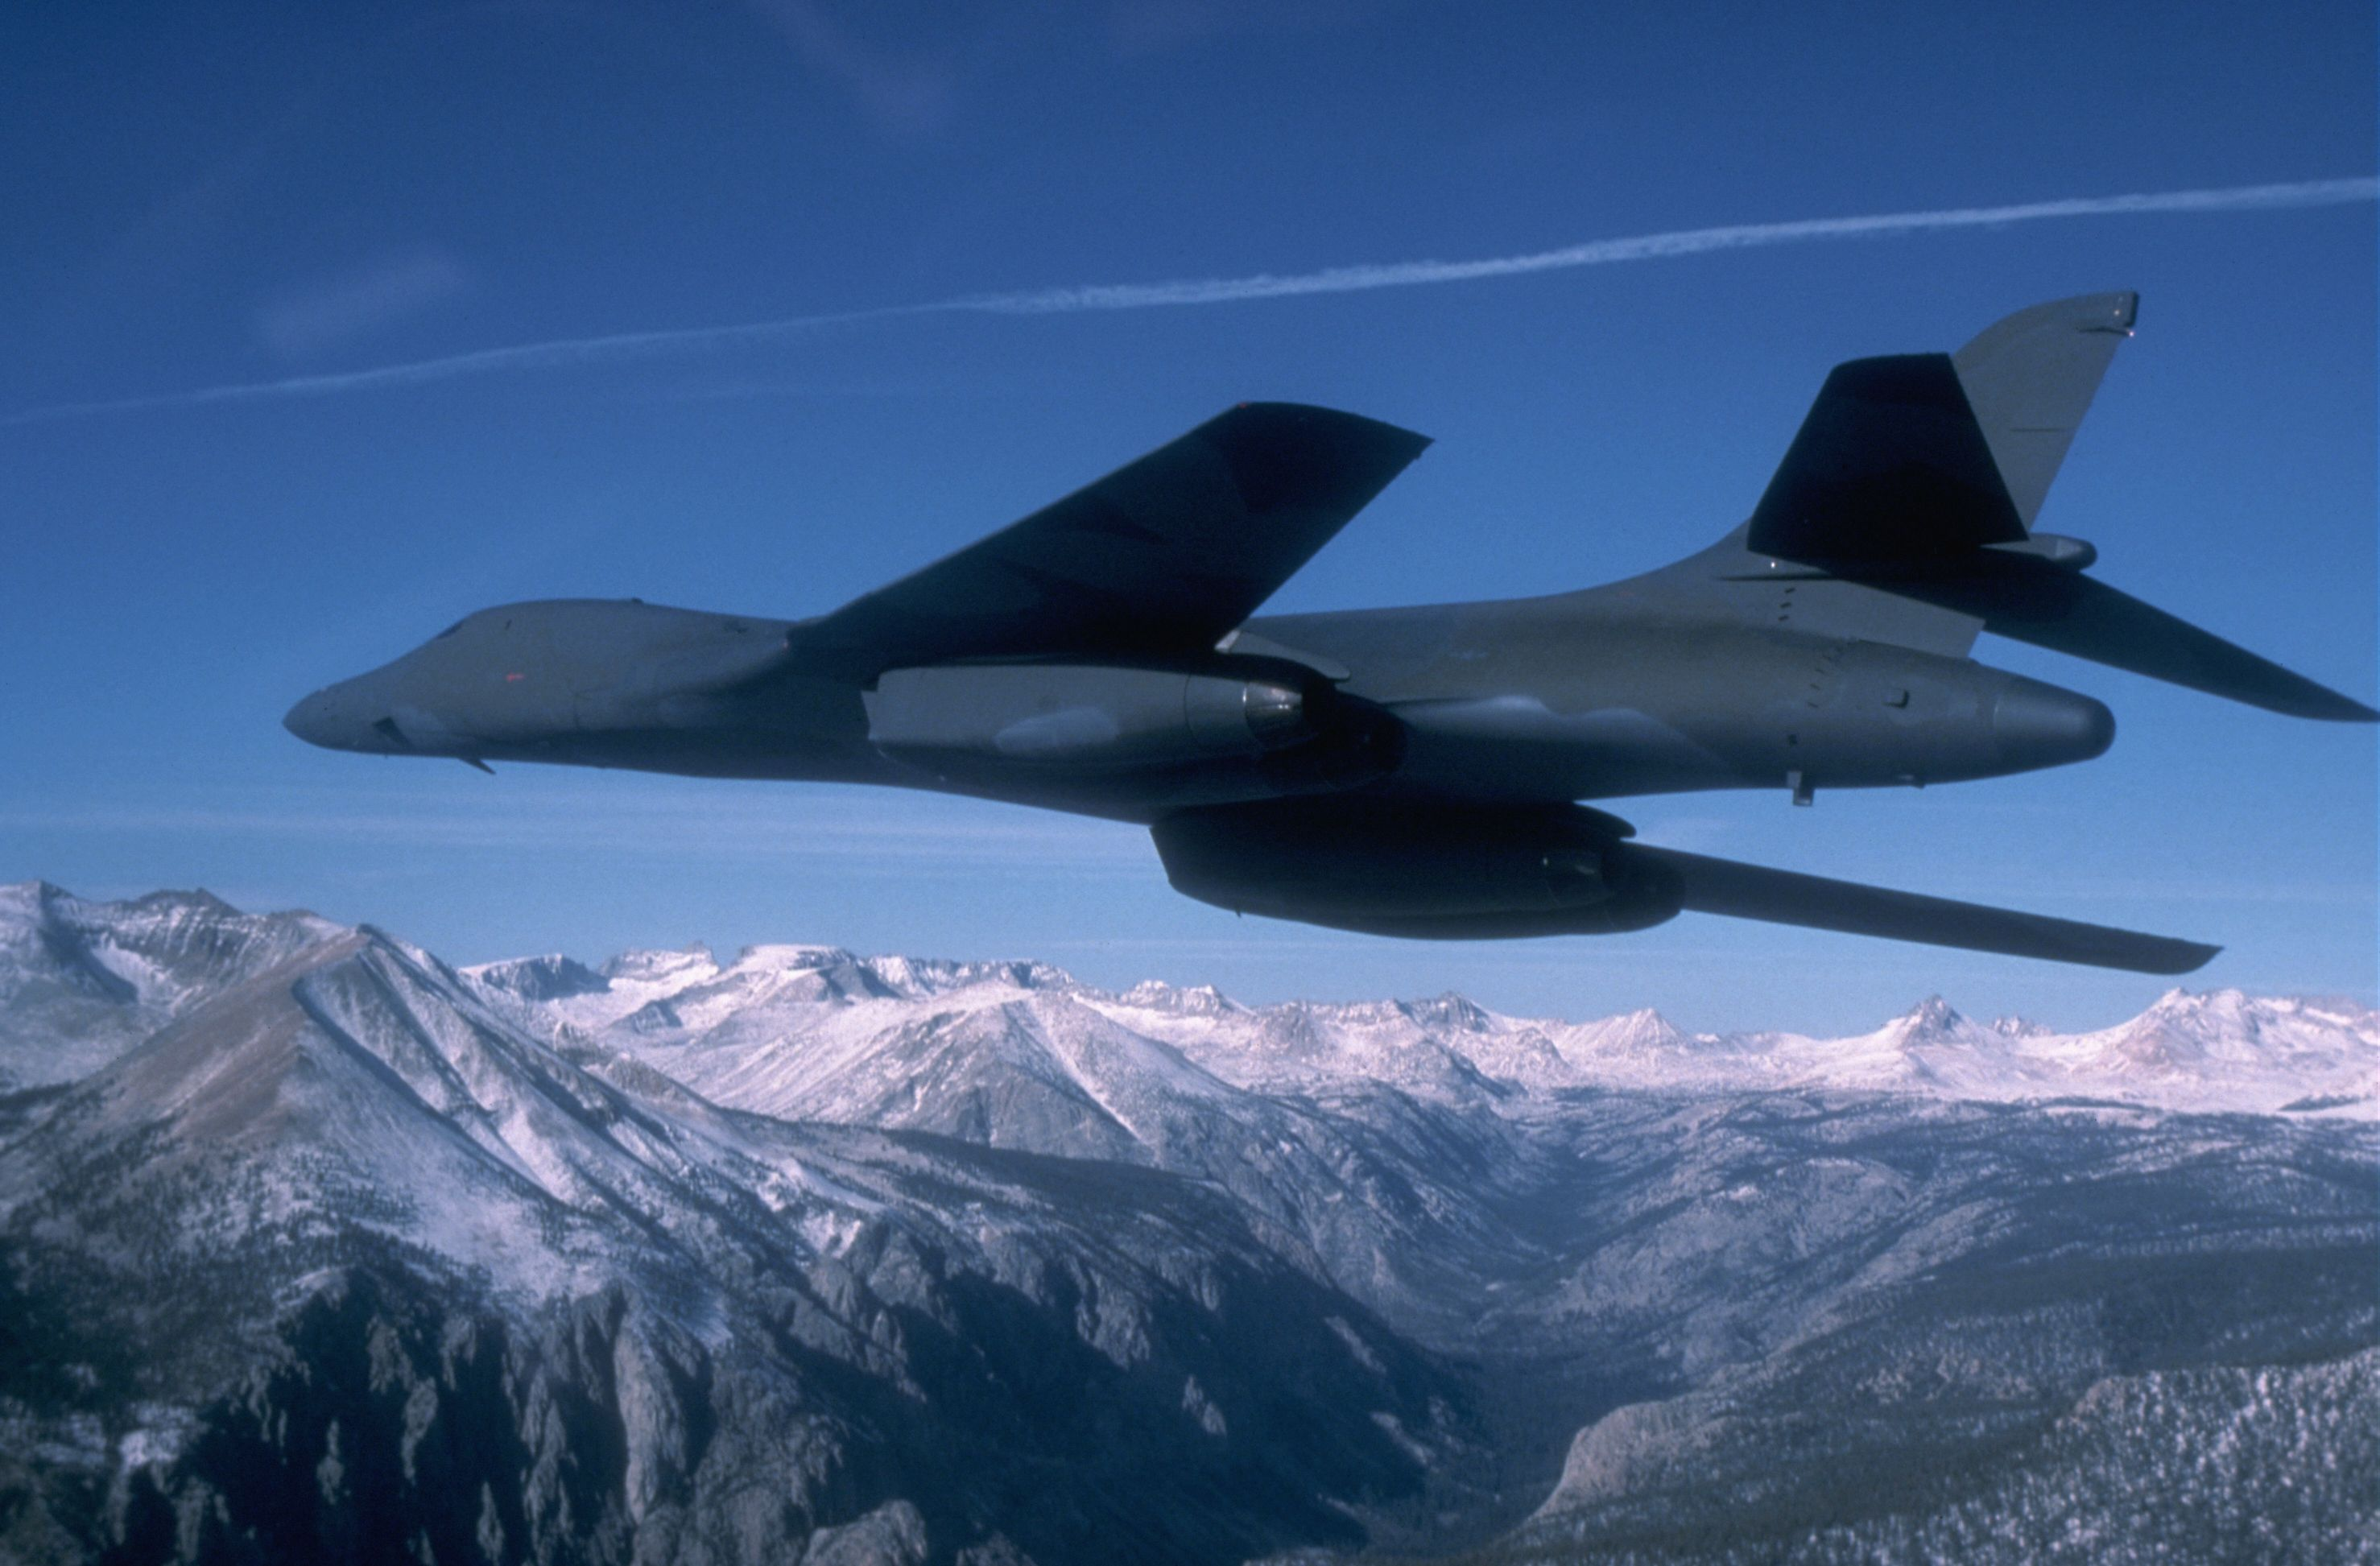 The Aging B-1 Bomber Can No Longer Fly Like It Used To